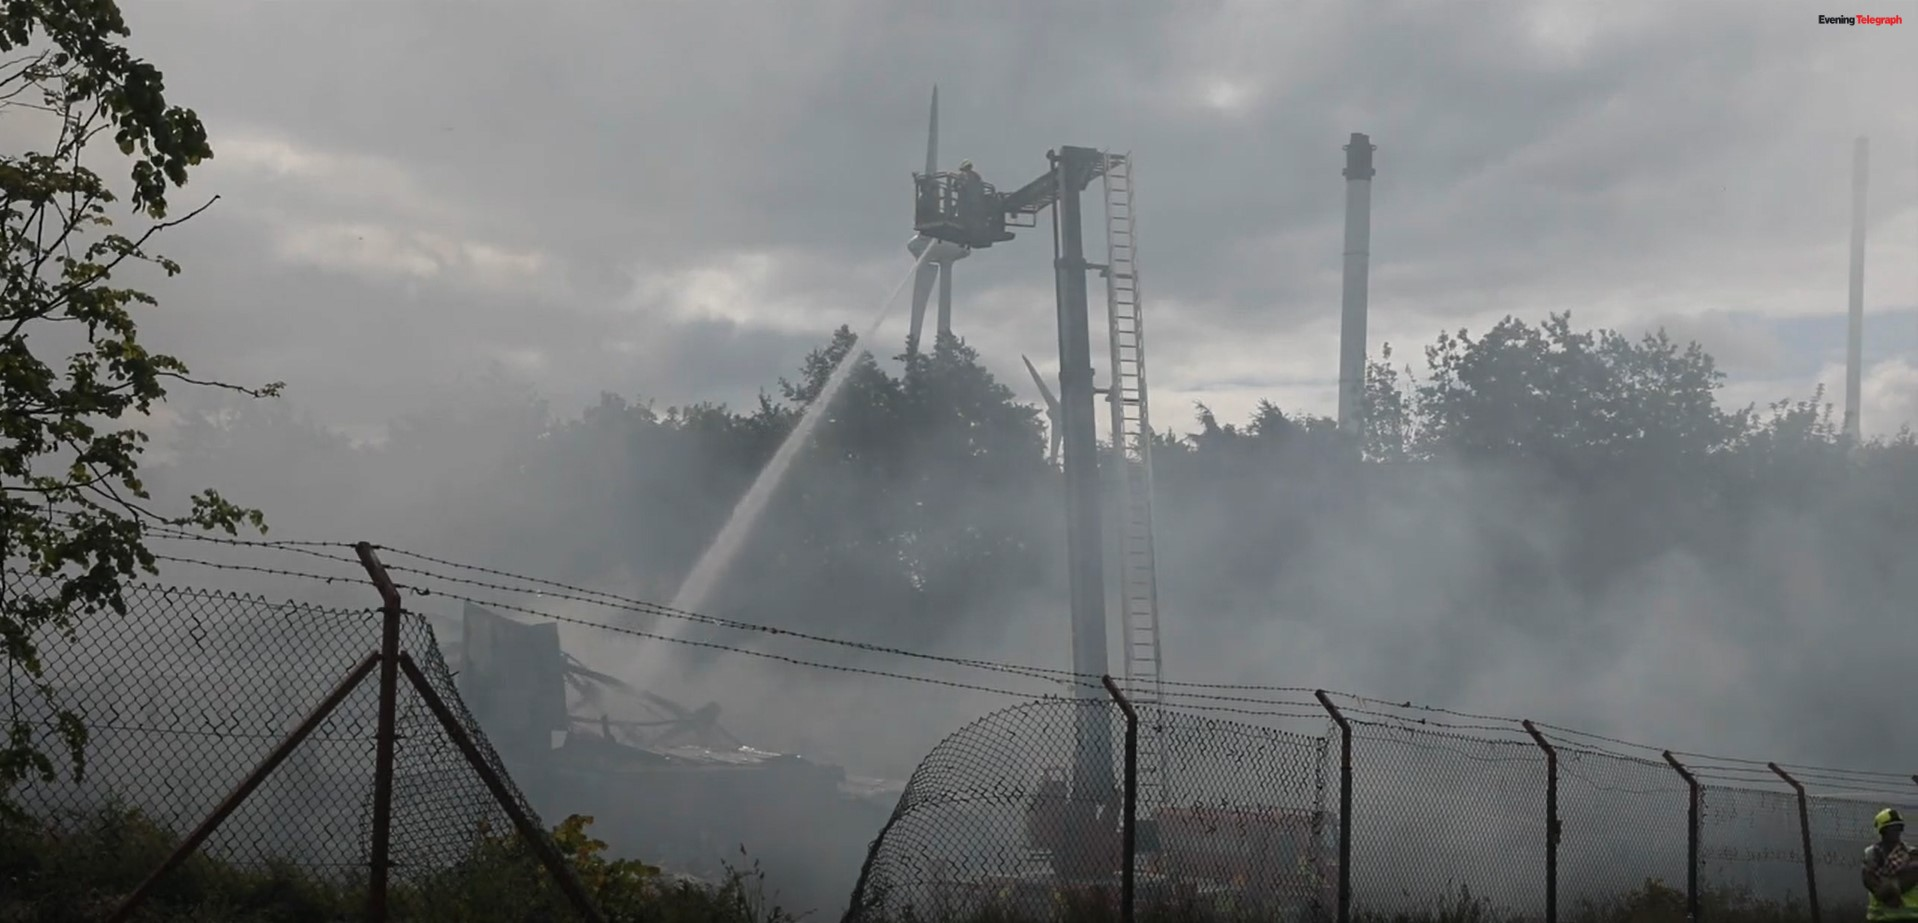 Police Investigate Fire That Destroyed Scottish Factory